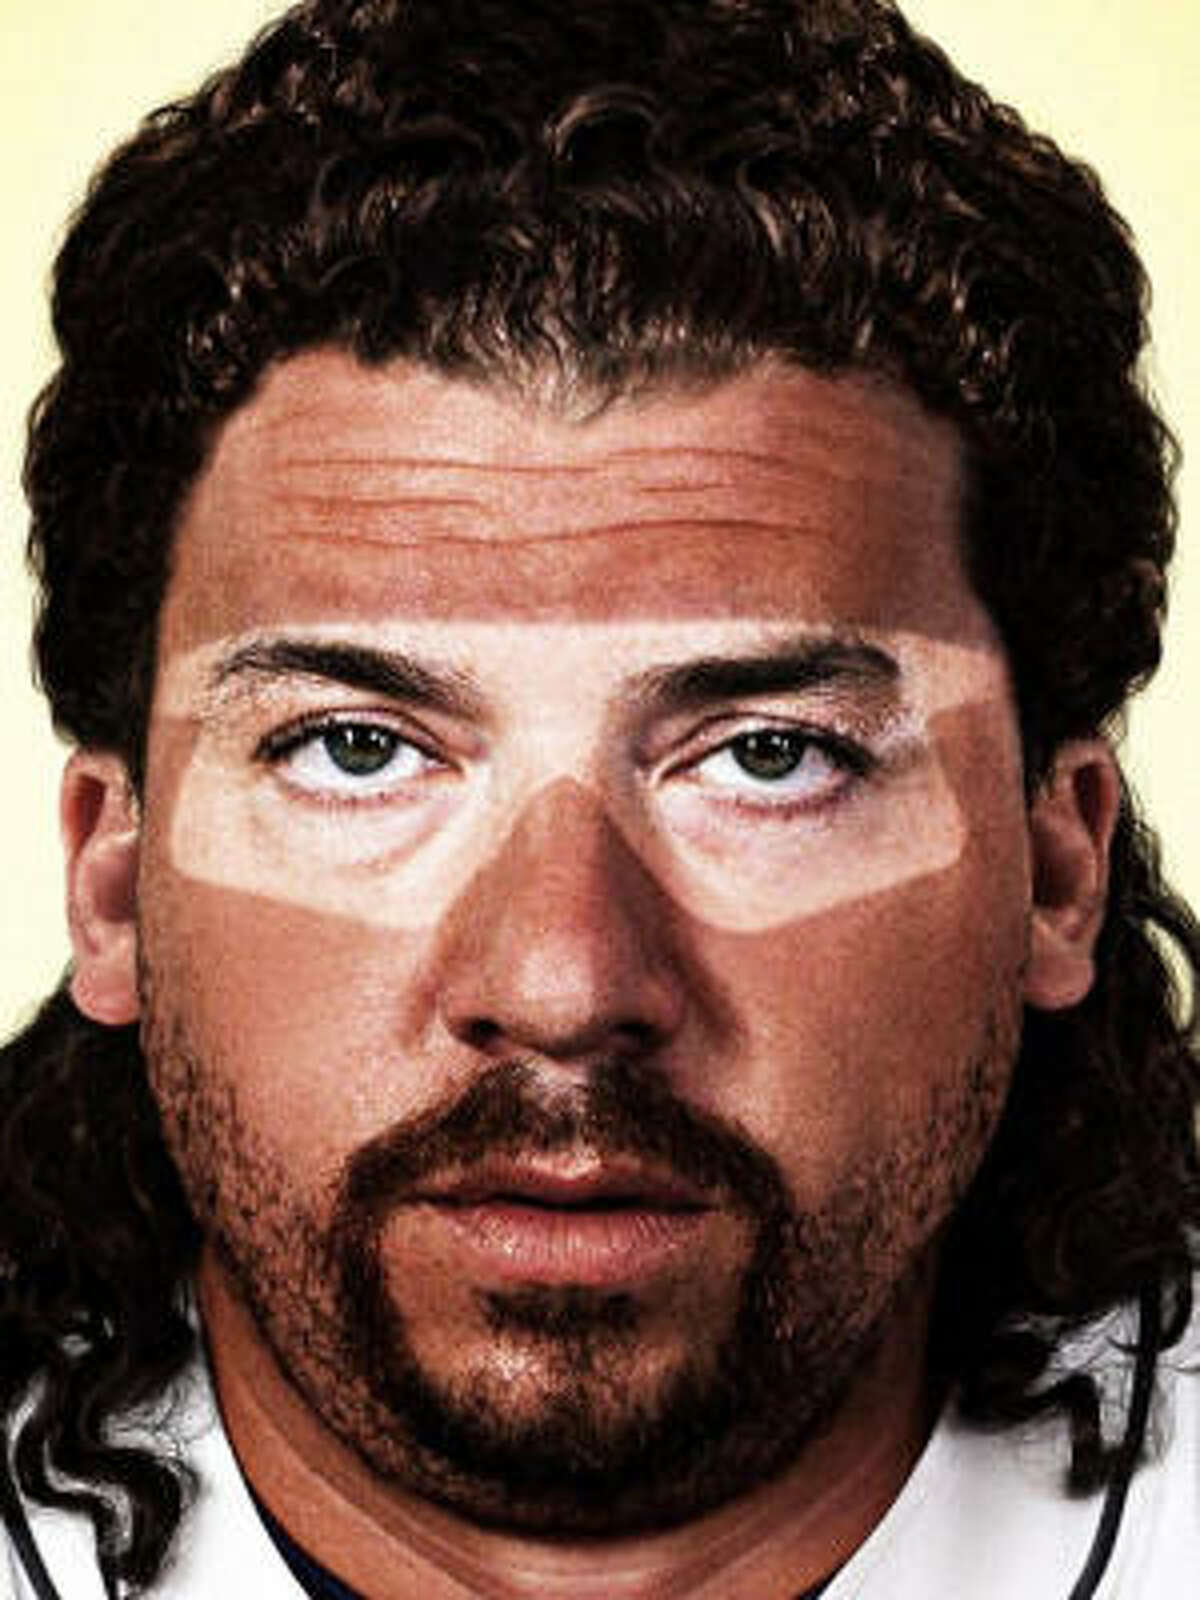 Danny McBride plays washed-up big leaguer Kenny Powers in the painfully hilarious Eastbound & Down. Powers: